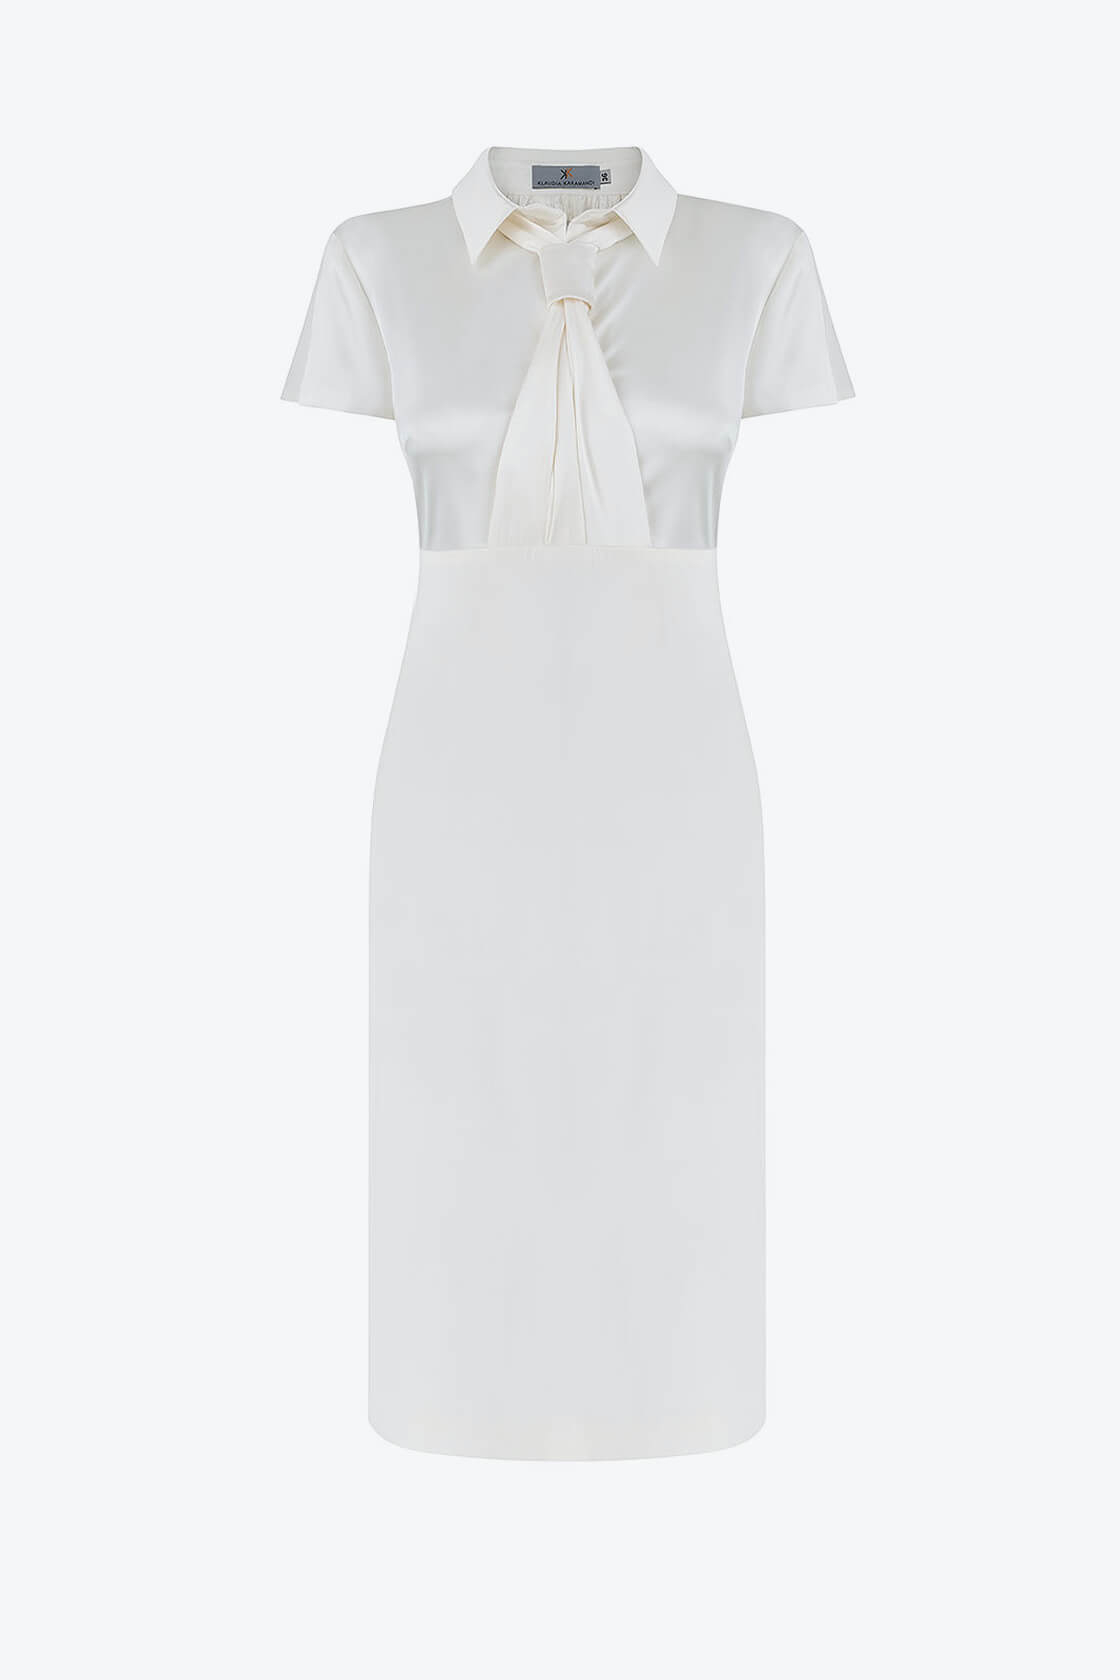 OL100002658 Zoja Fitted Dress With Collar And Tie White1